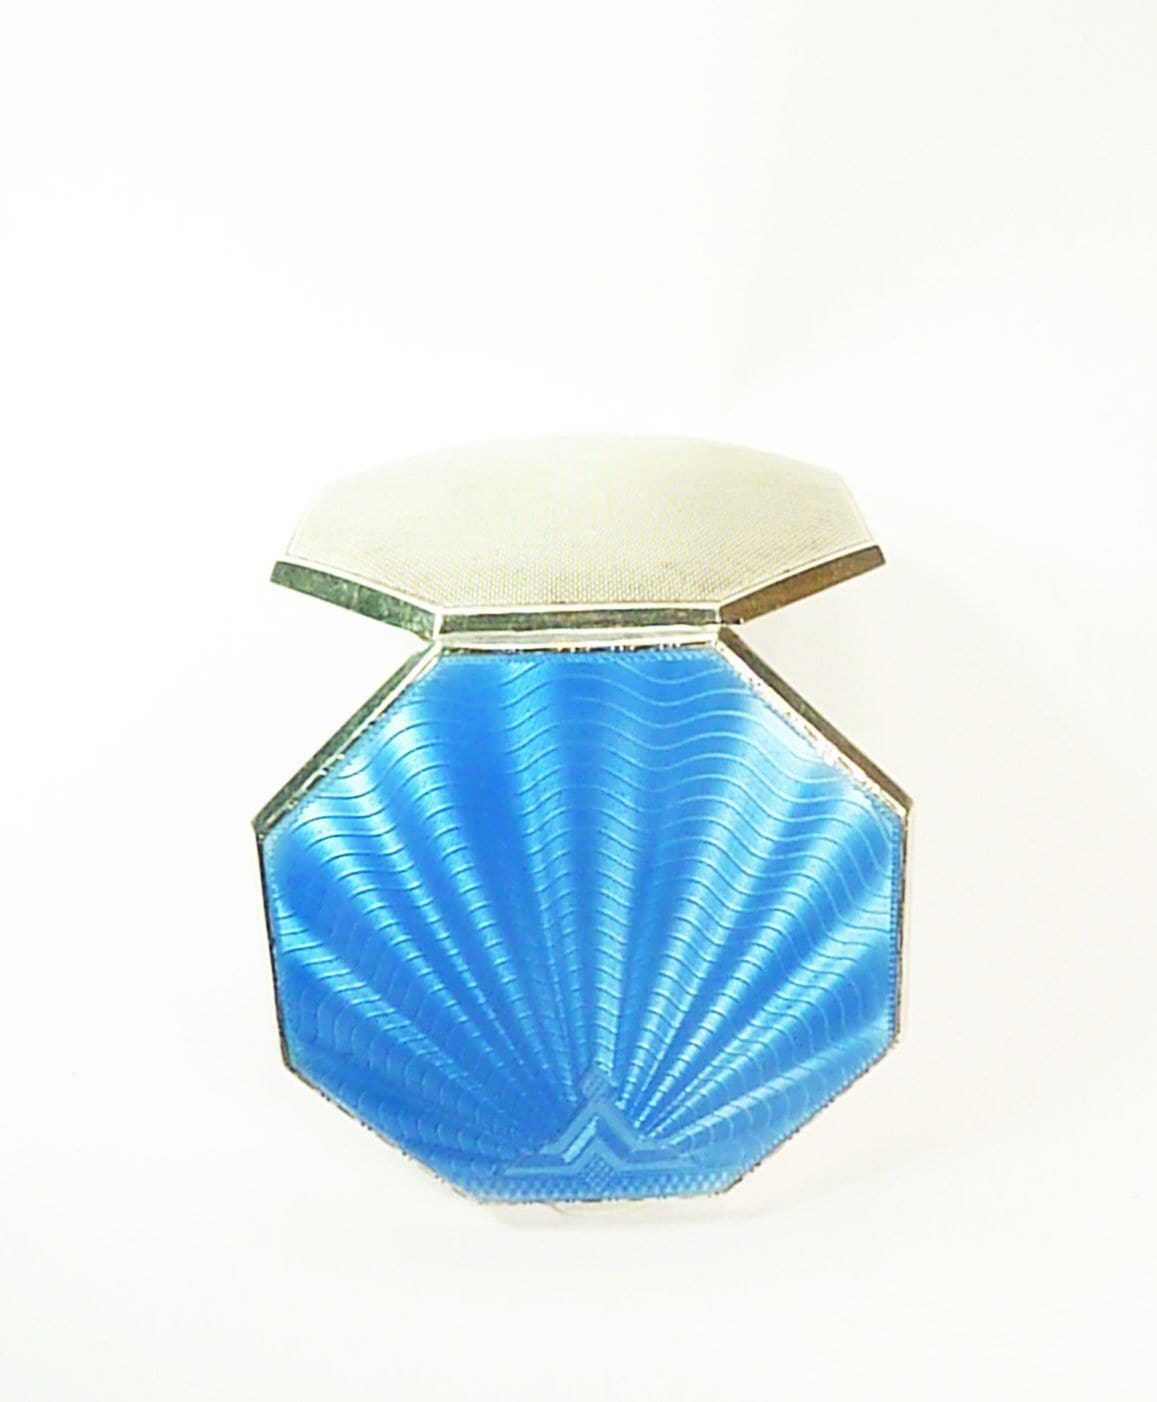 Sterling Silver Guilloche Enamel Compact Mirror 1920s